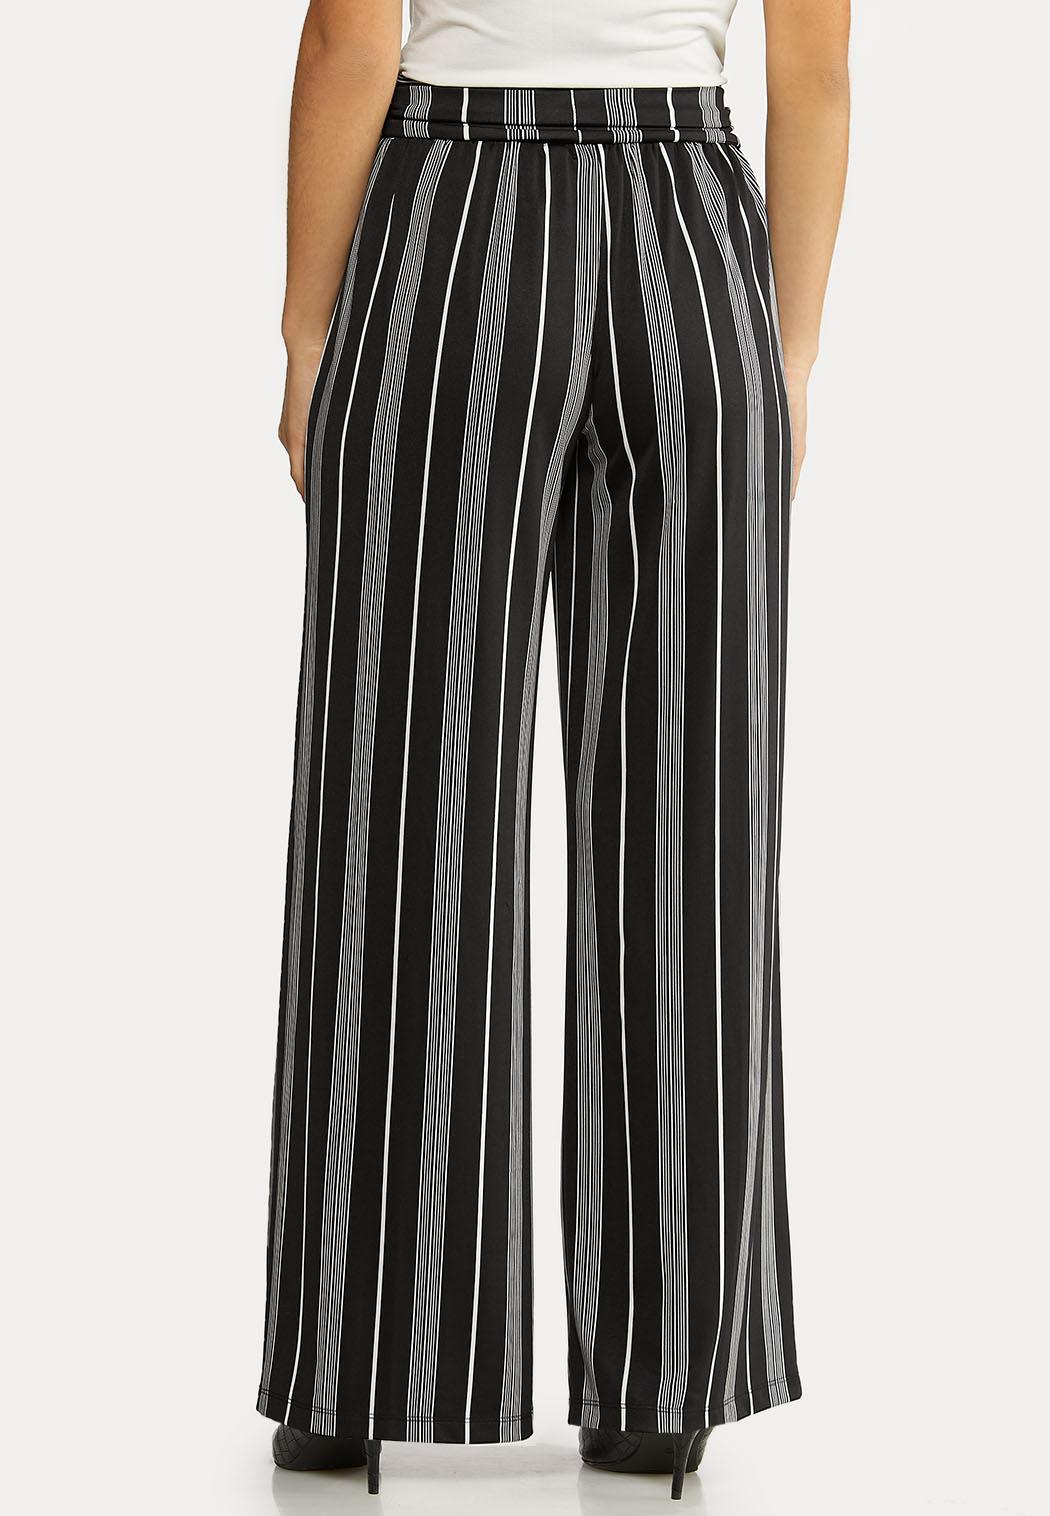 Petite Striped Tie Belted Pants (Item #44104901)